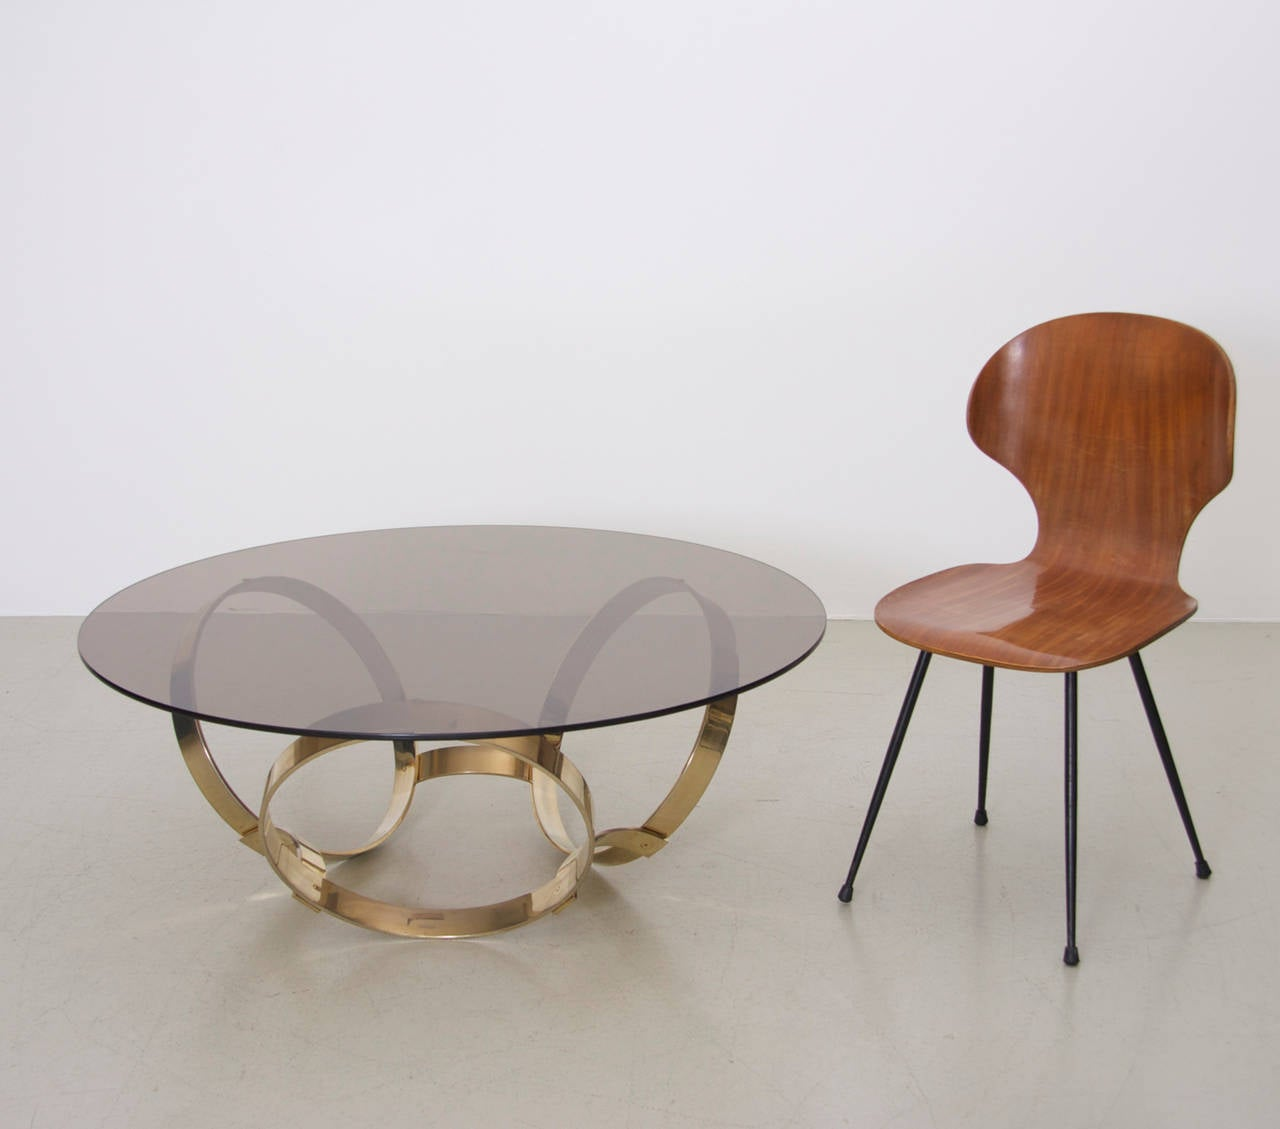 Round Brass Geometric Rings Coffee Table With Glass Top At 1stdibs